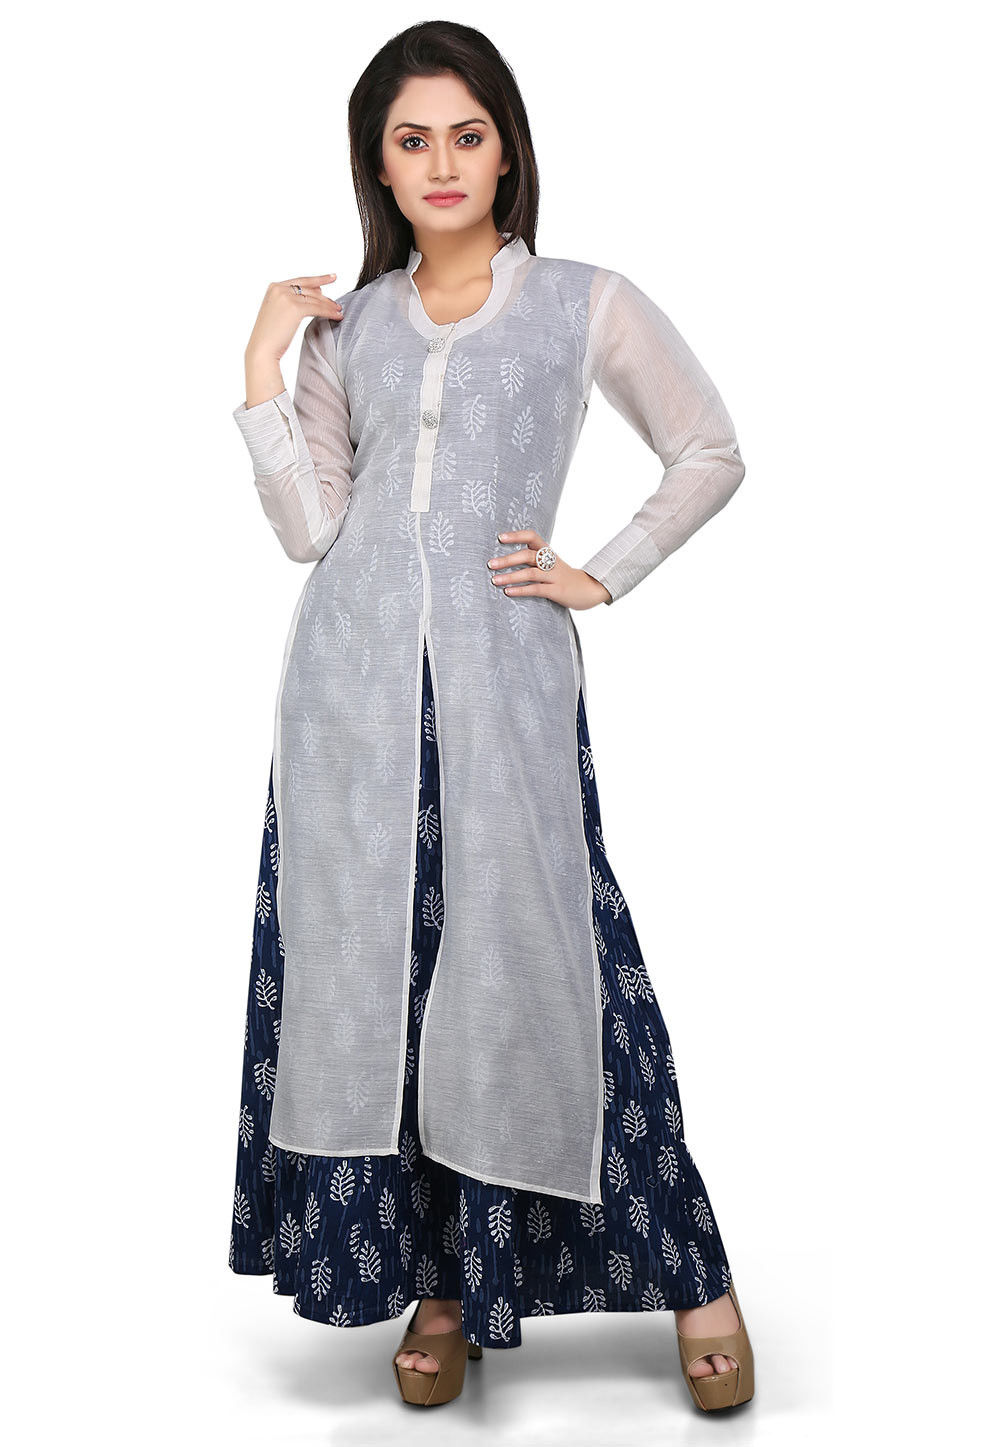 Block Printed Cotton Chanderi Abaya Suit in White and Blue